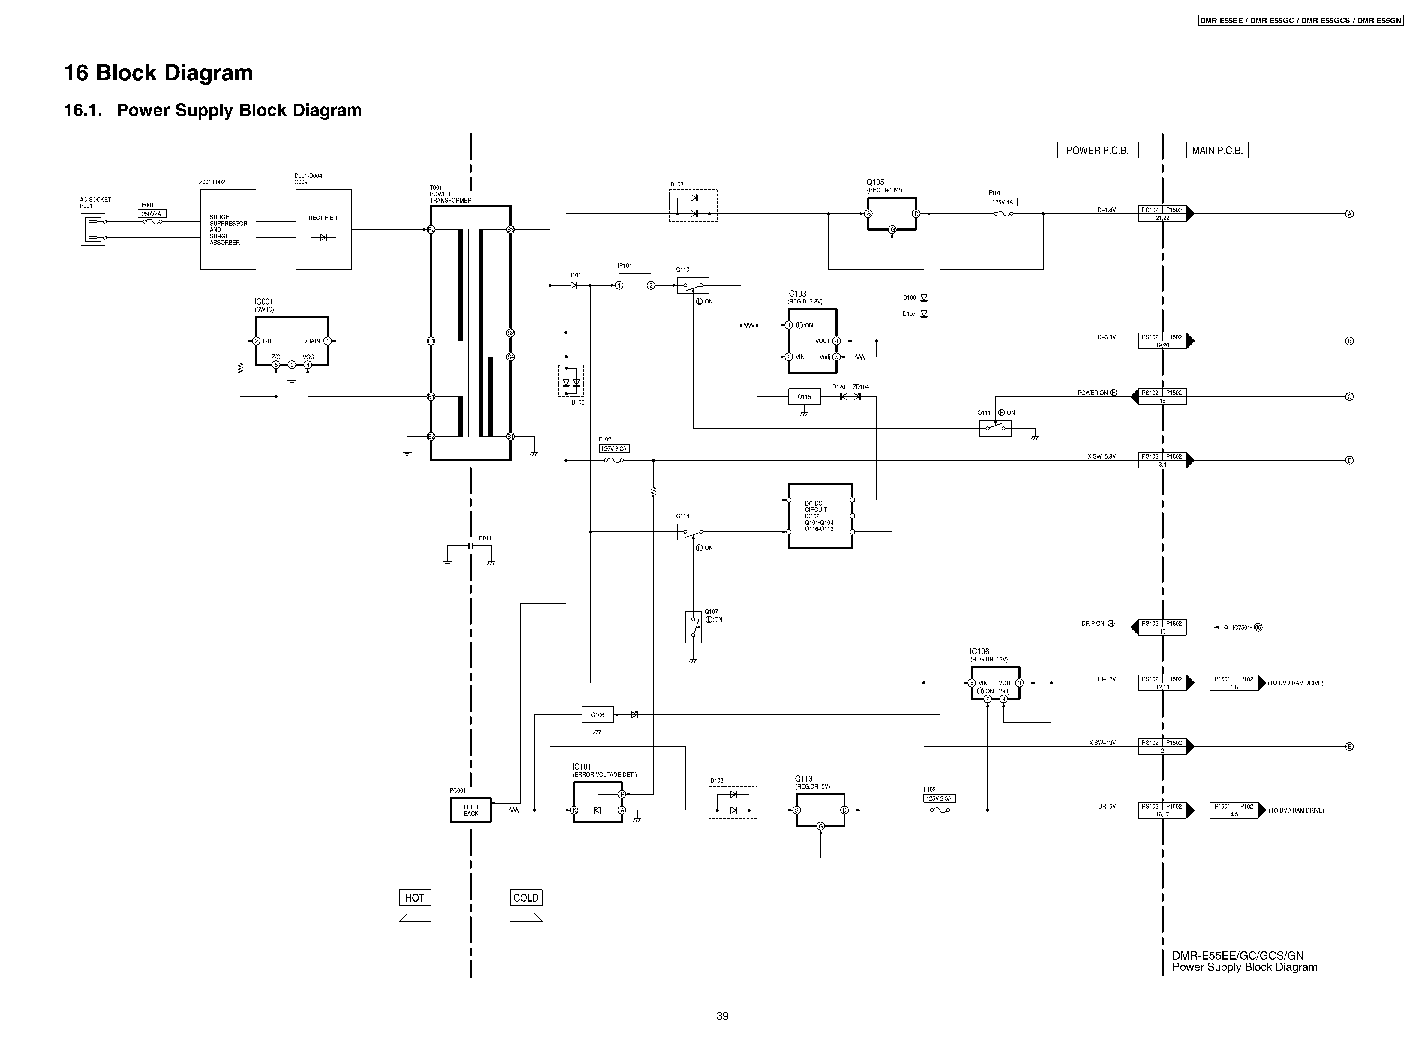 E55p Dmr Panasonic Schematic Diagram Power Supply Board